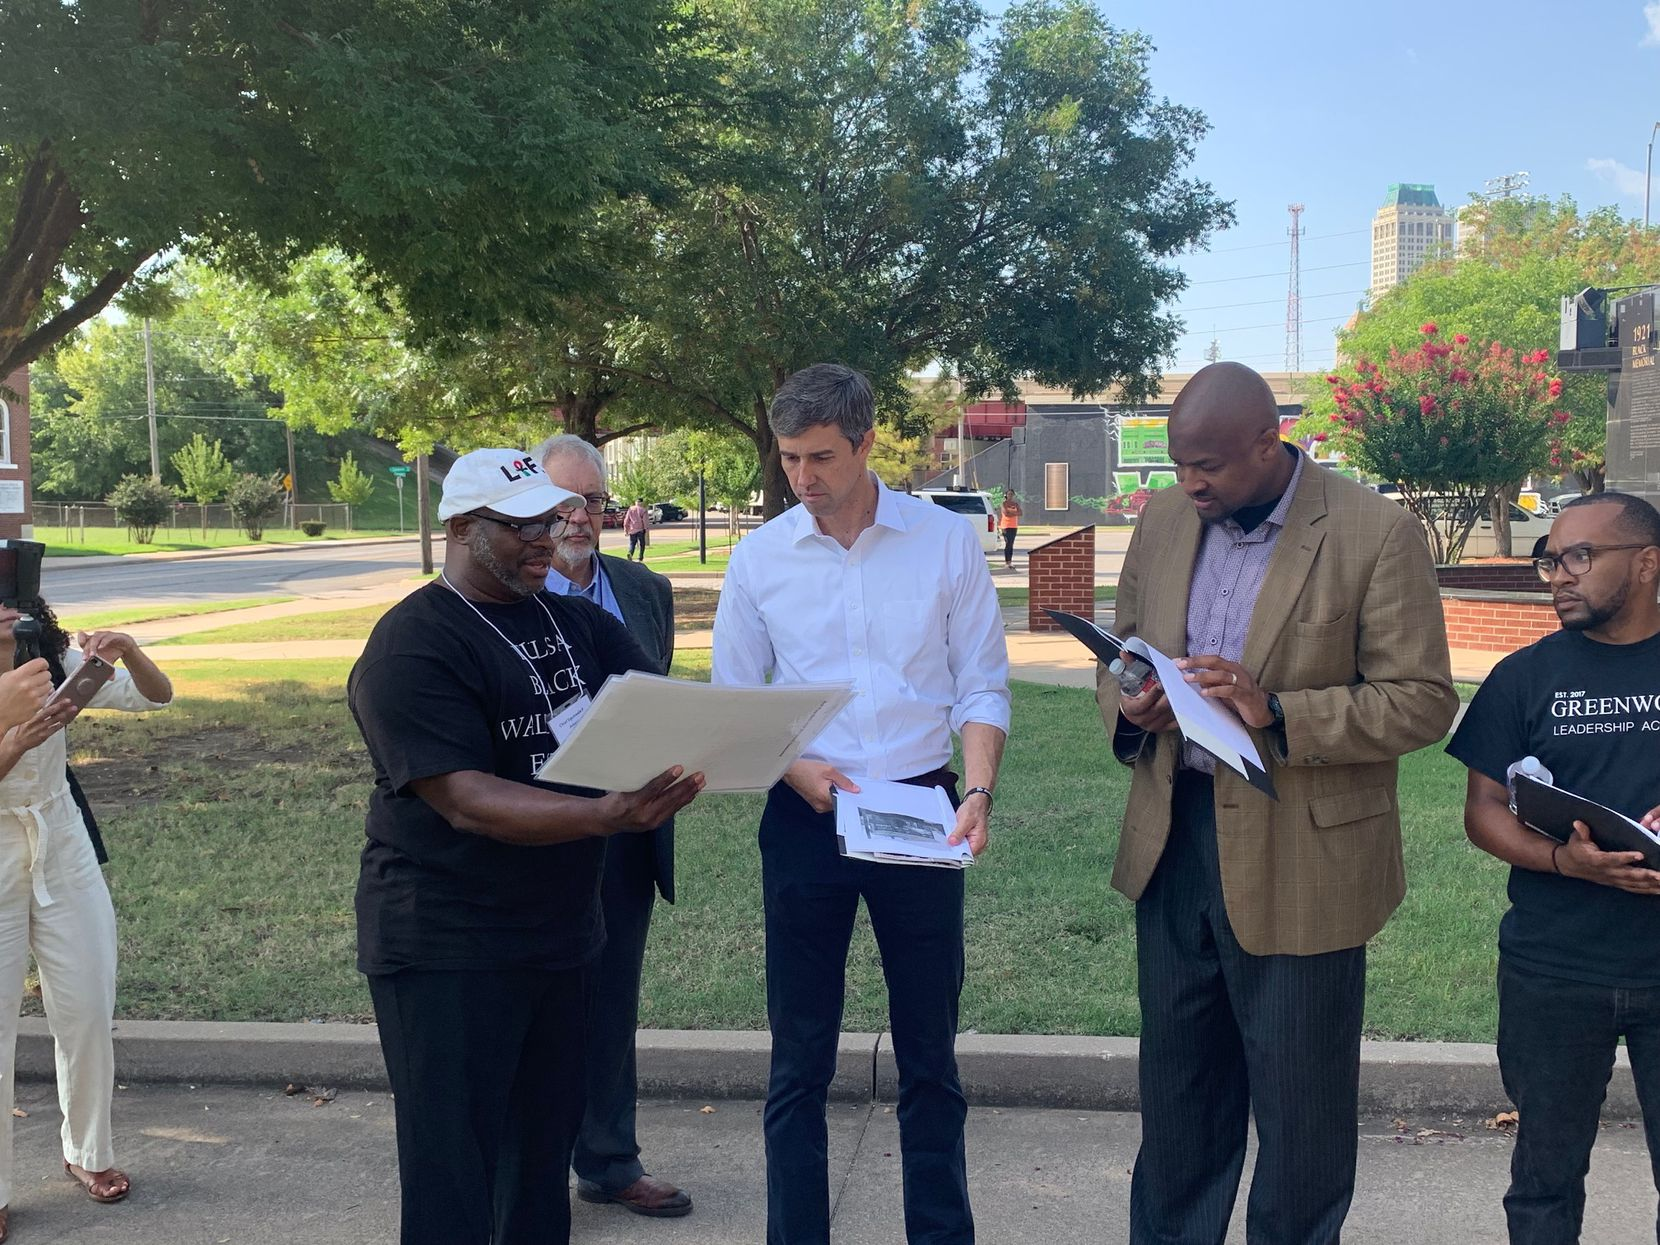 Presidential candidate Beto O'Rourke looks over documents related to the 1921 massacre  of the Greenwood neighborhood in Tulsa.